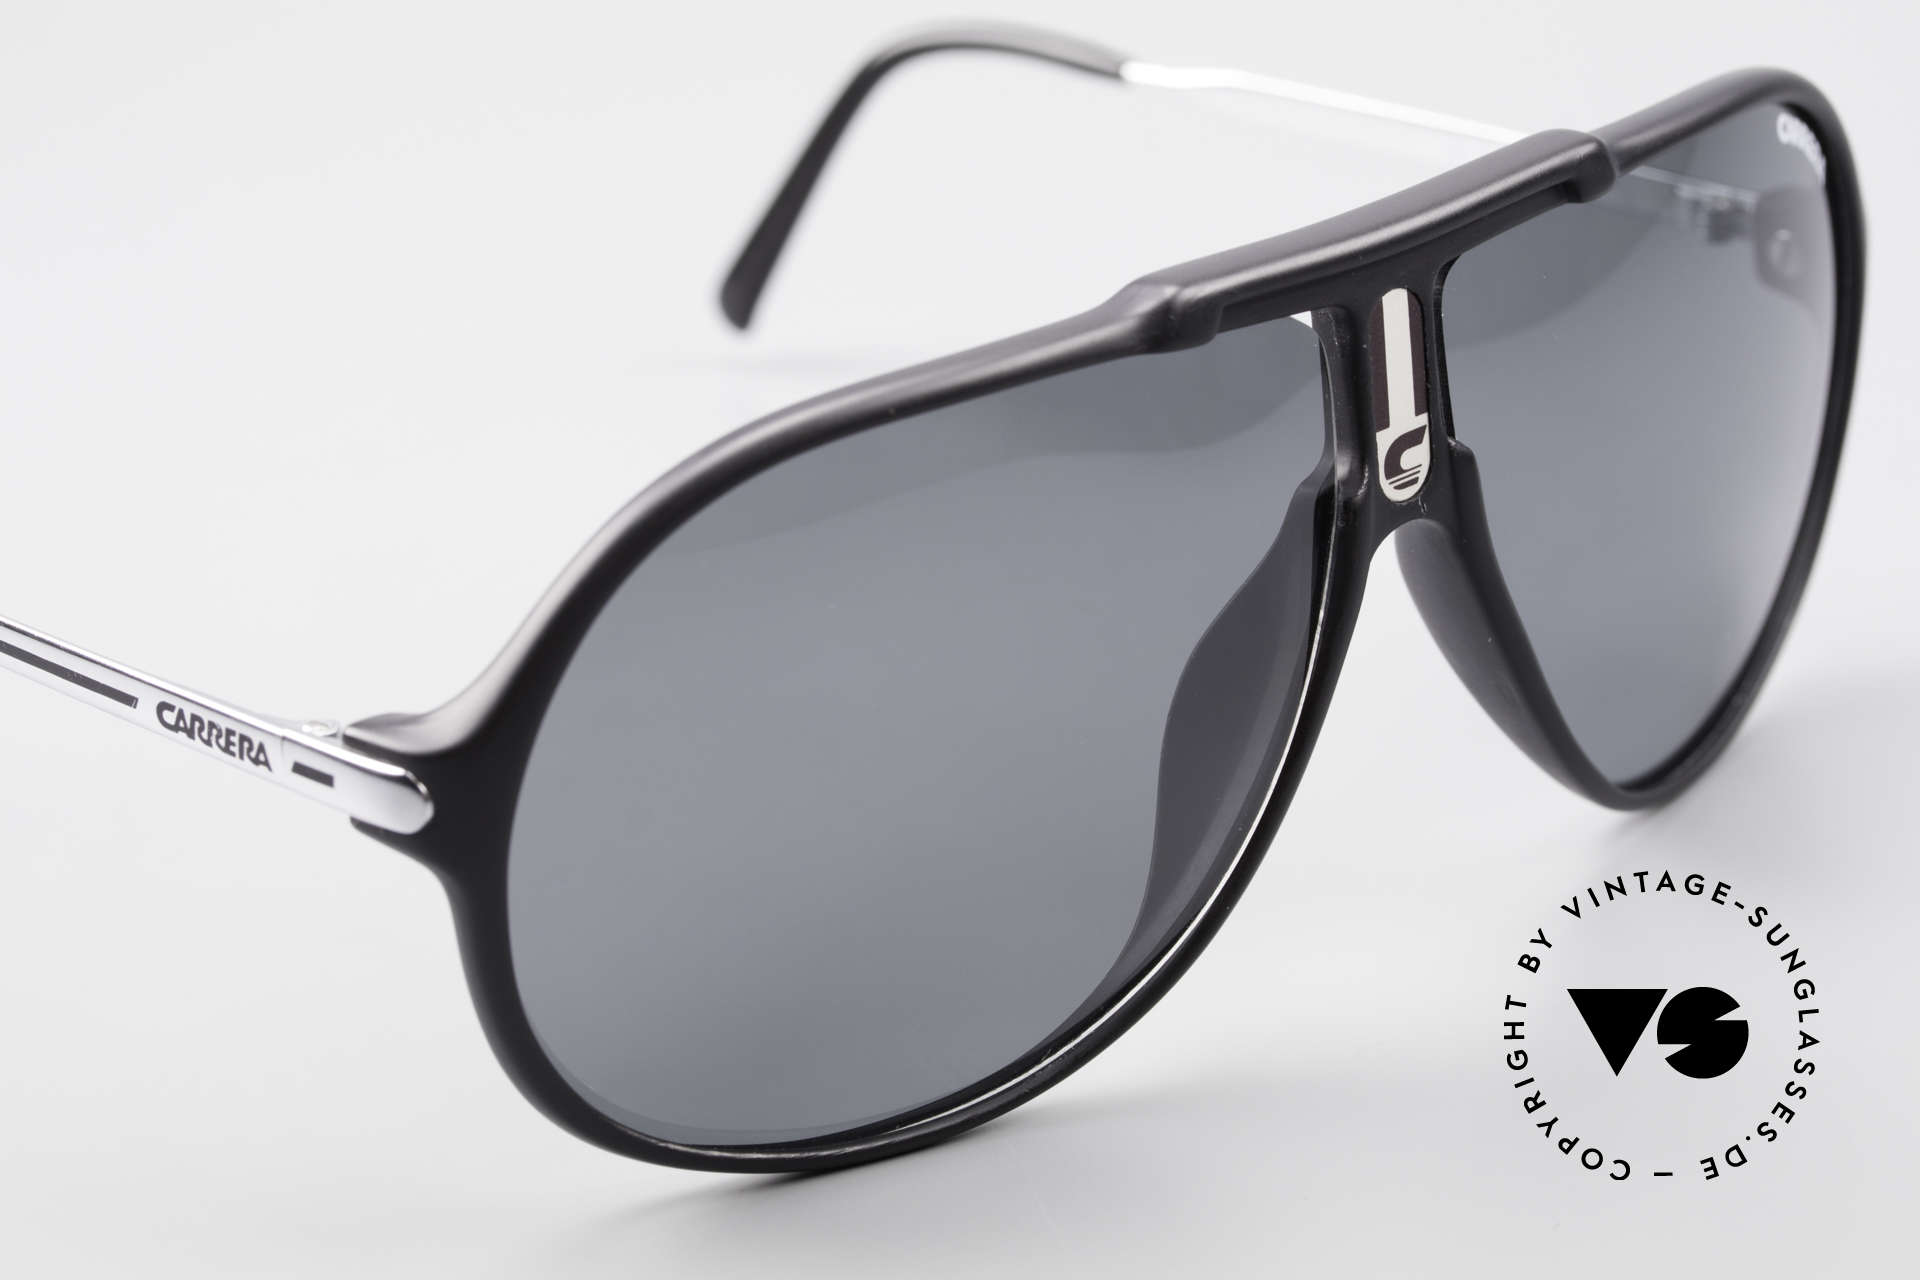 Carrera 5590 Polarized Sports Sunglasses, cool combination of functionality and 'sporty lifestyle'!, Made for Men